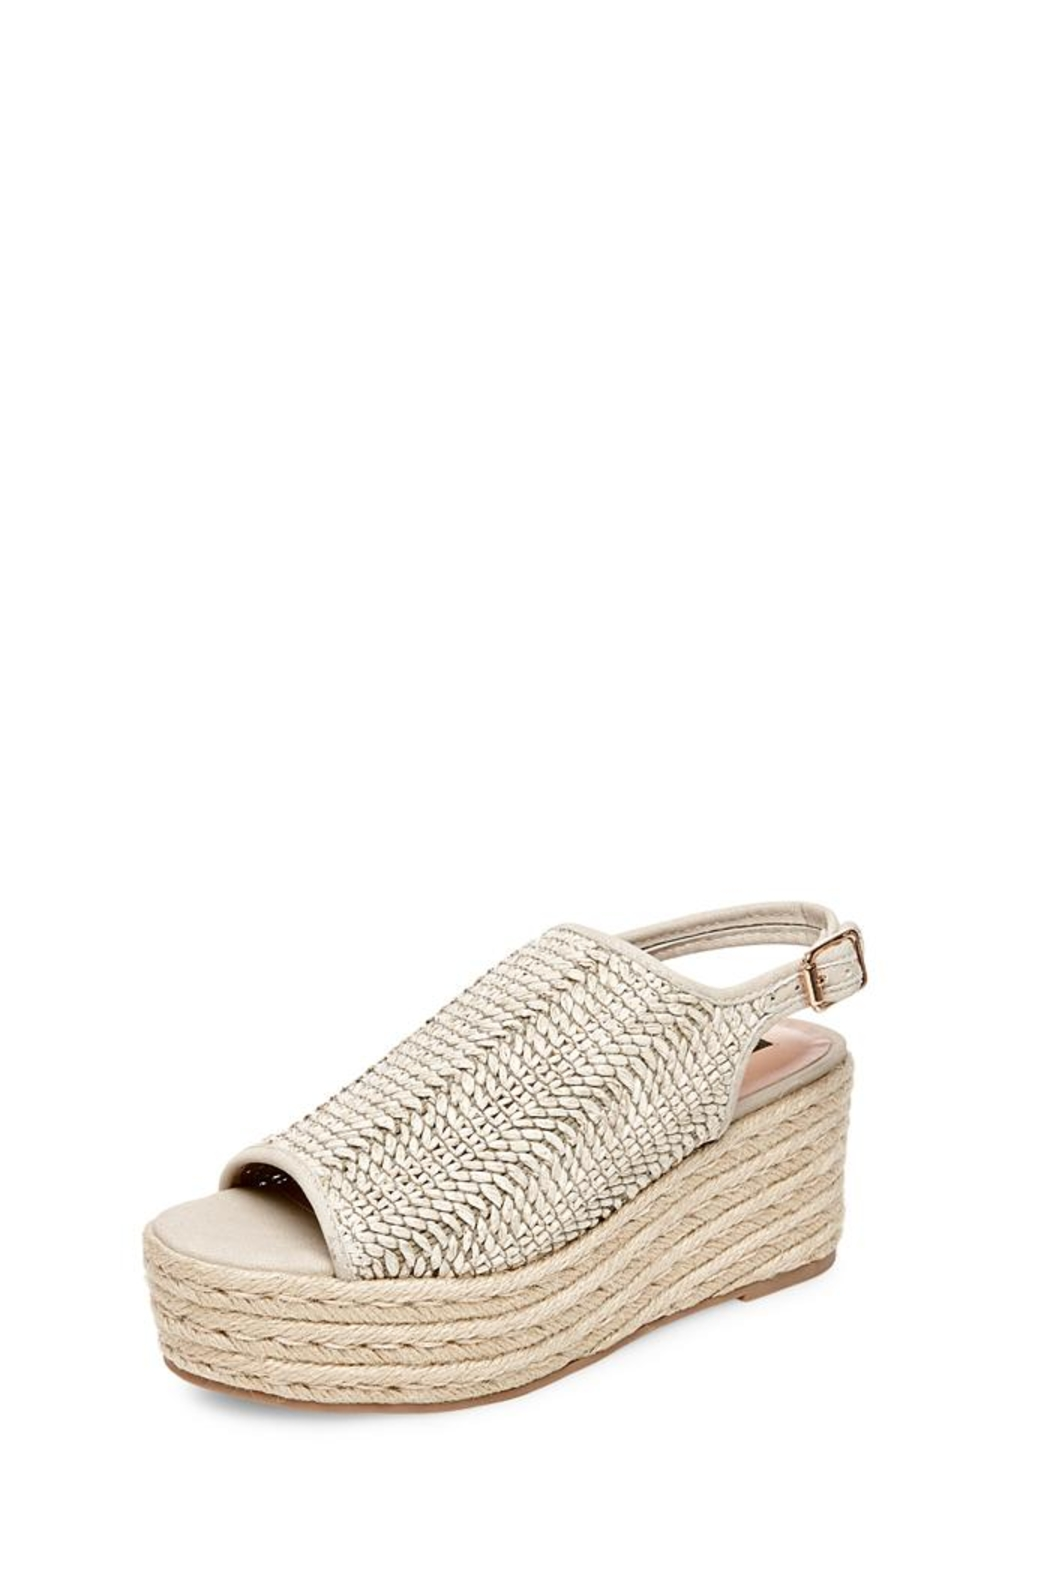 733767e2f88 Steven by Steve Madden Courage Wicker Platform from New York by Luna ...